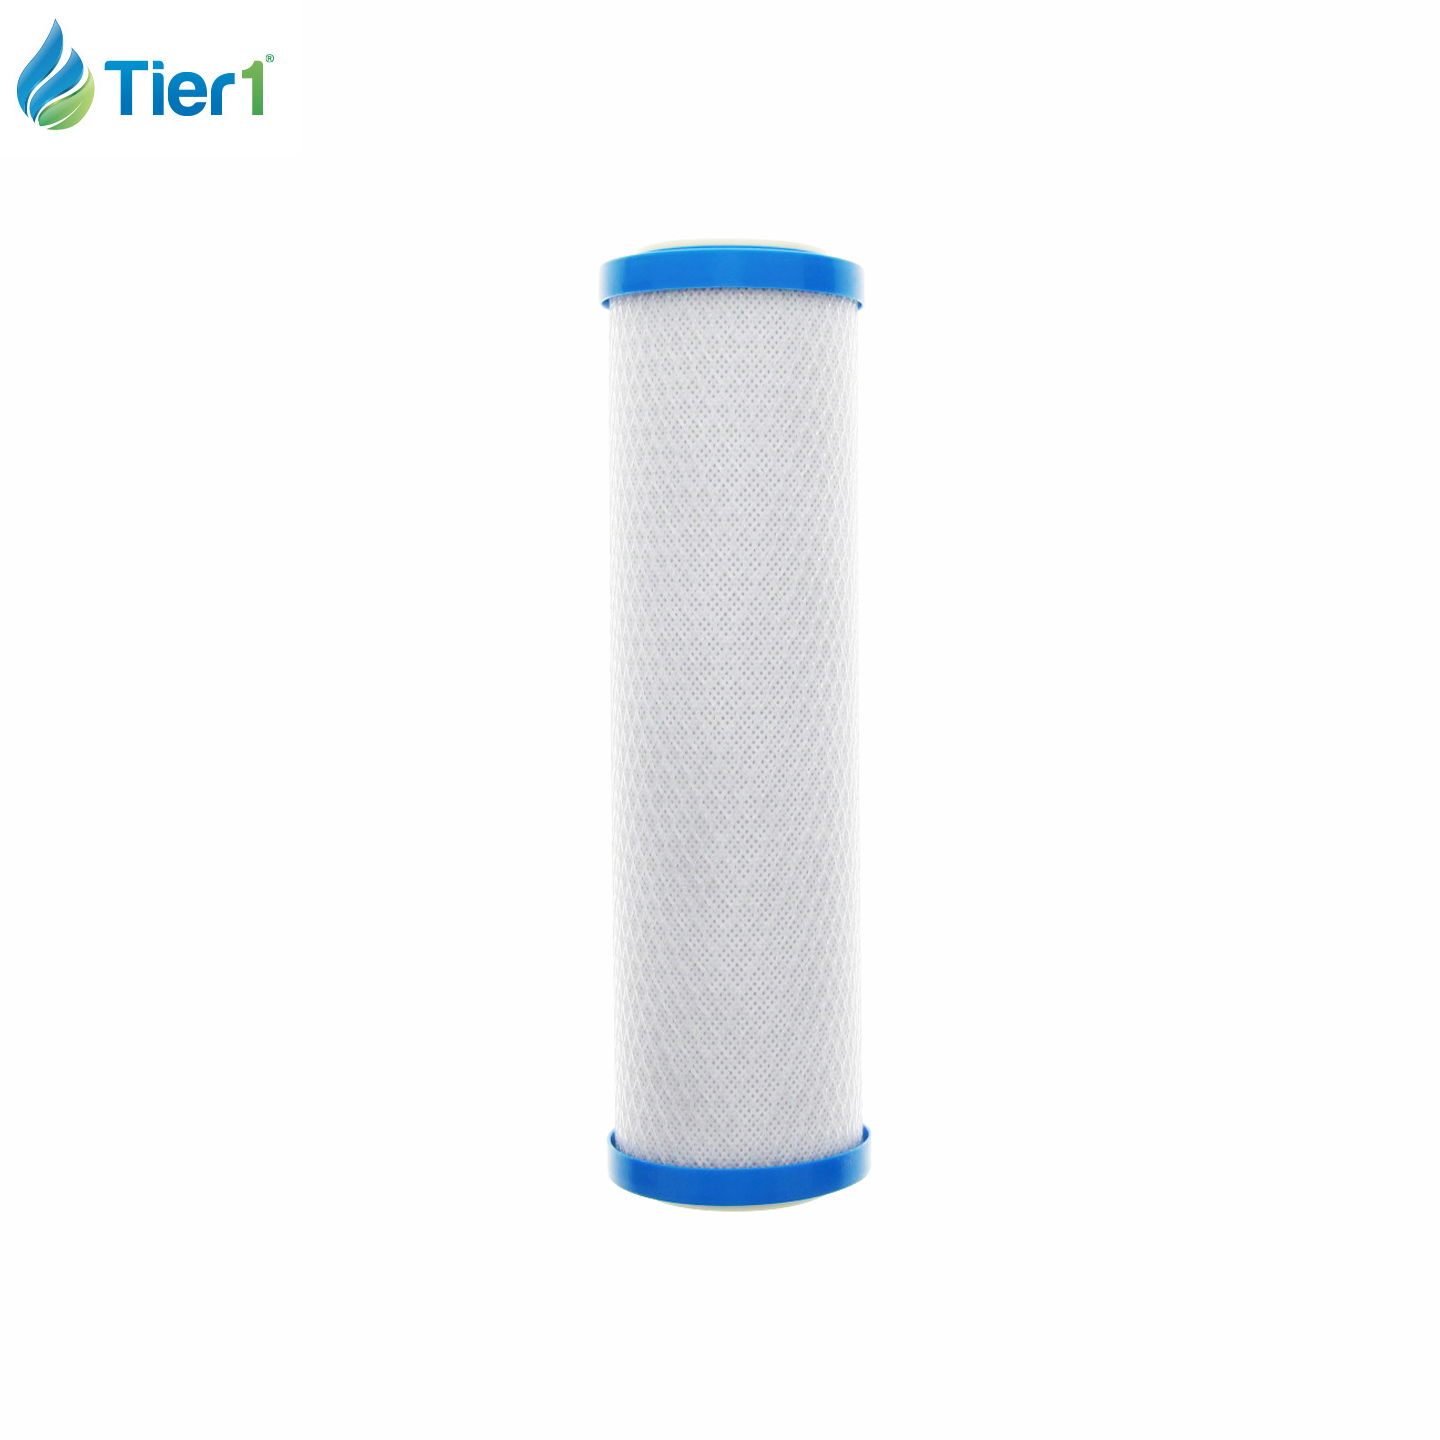 10 x 2.5 Inch Universal Carbon Block Under Sink Filter (0.5 Micron) TIER1-US-D30